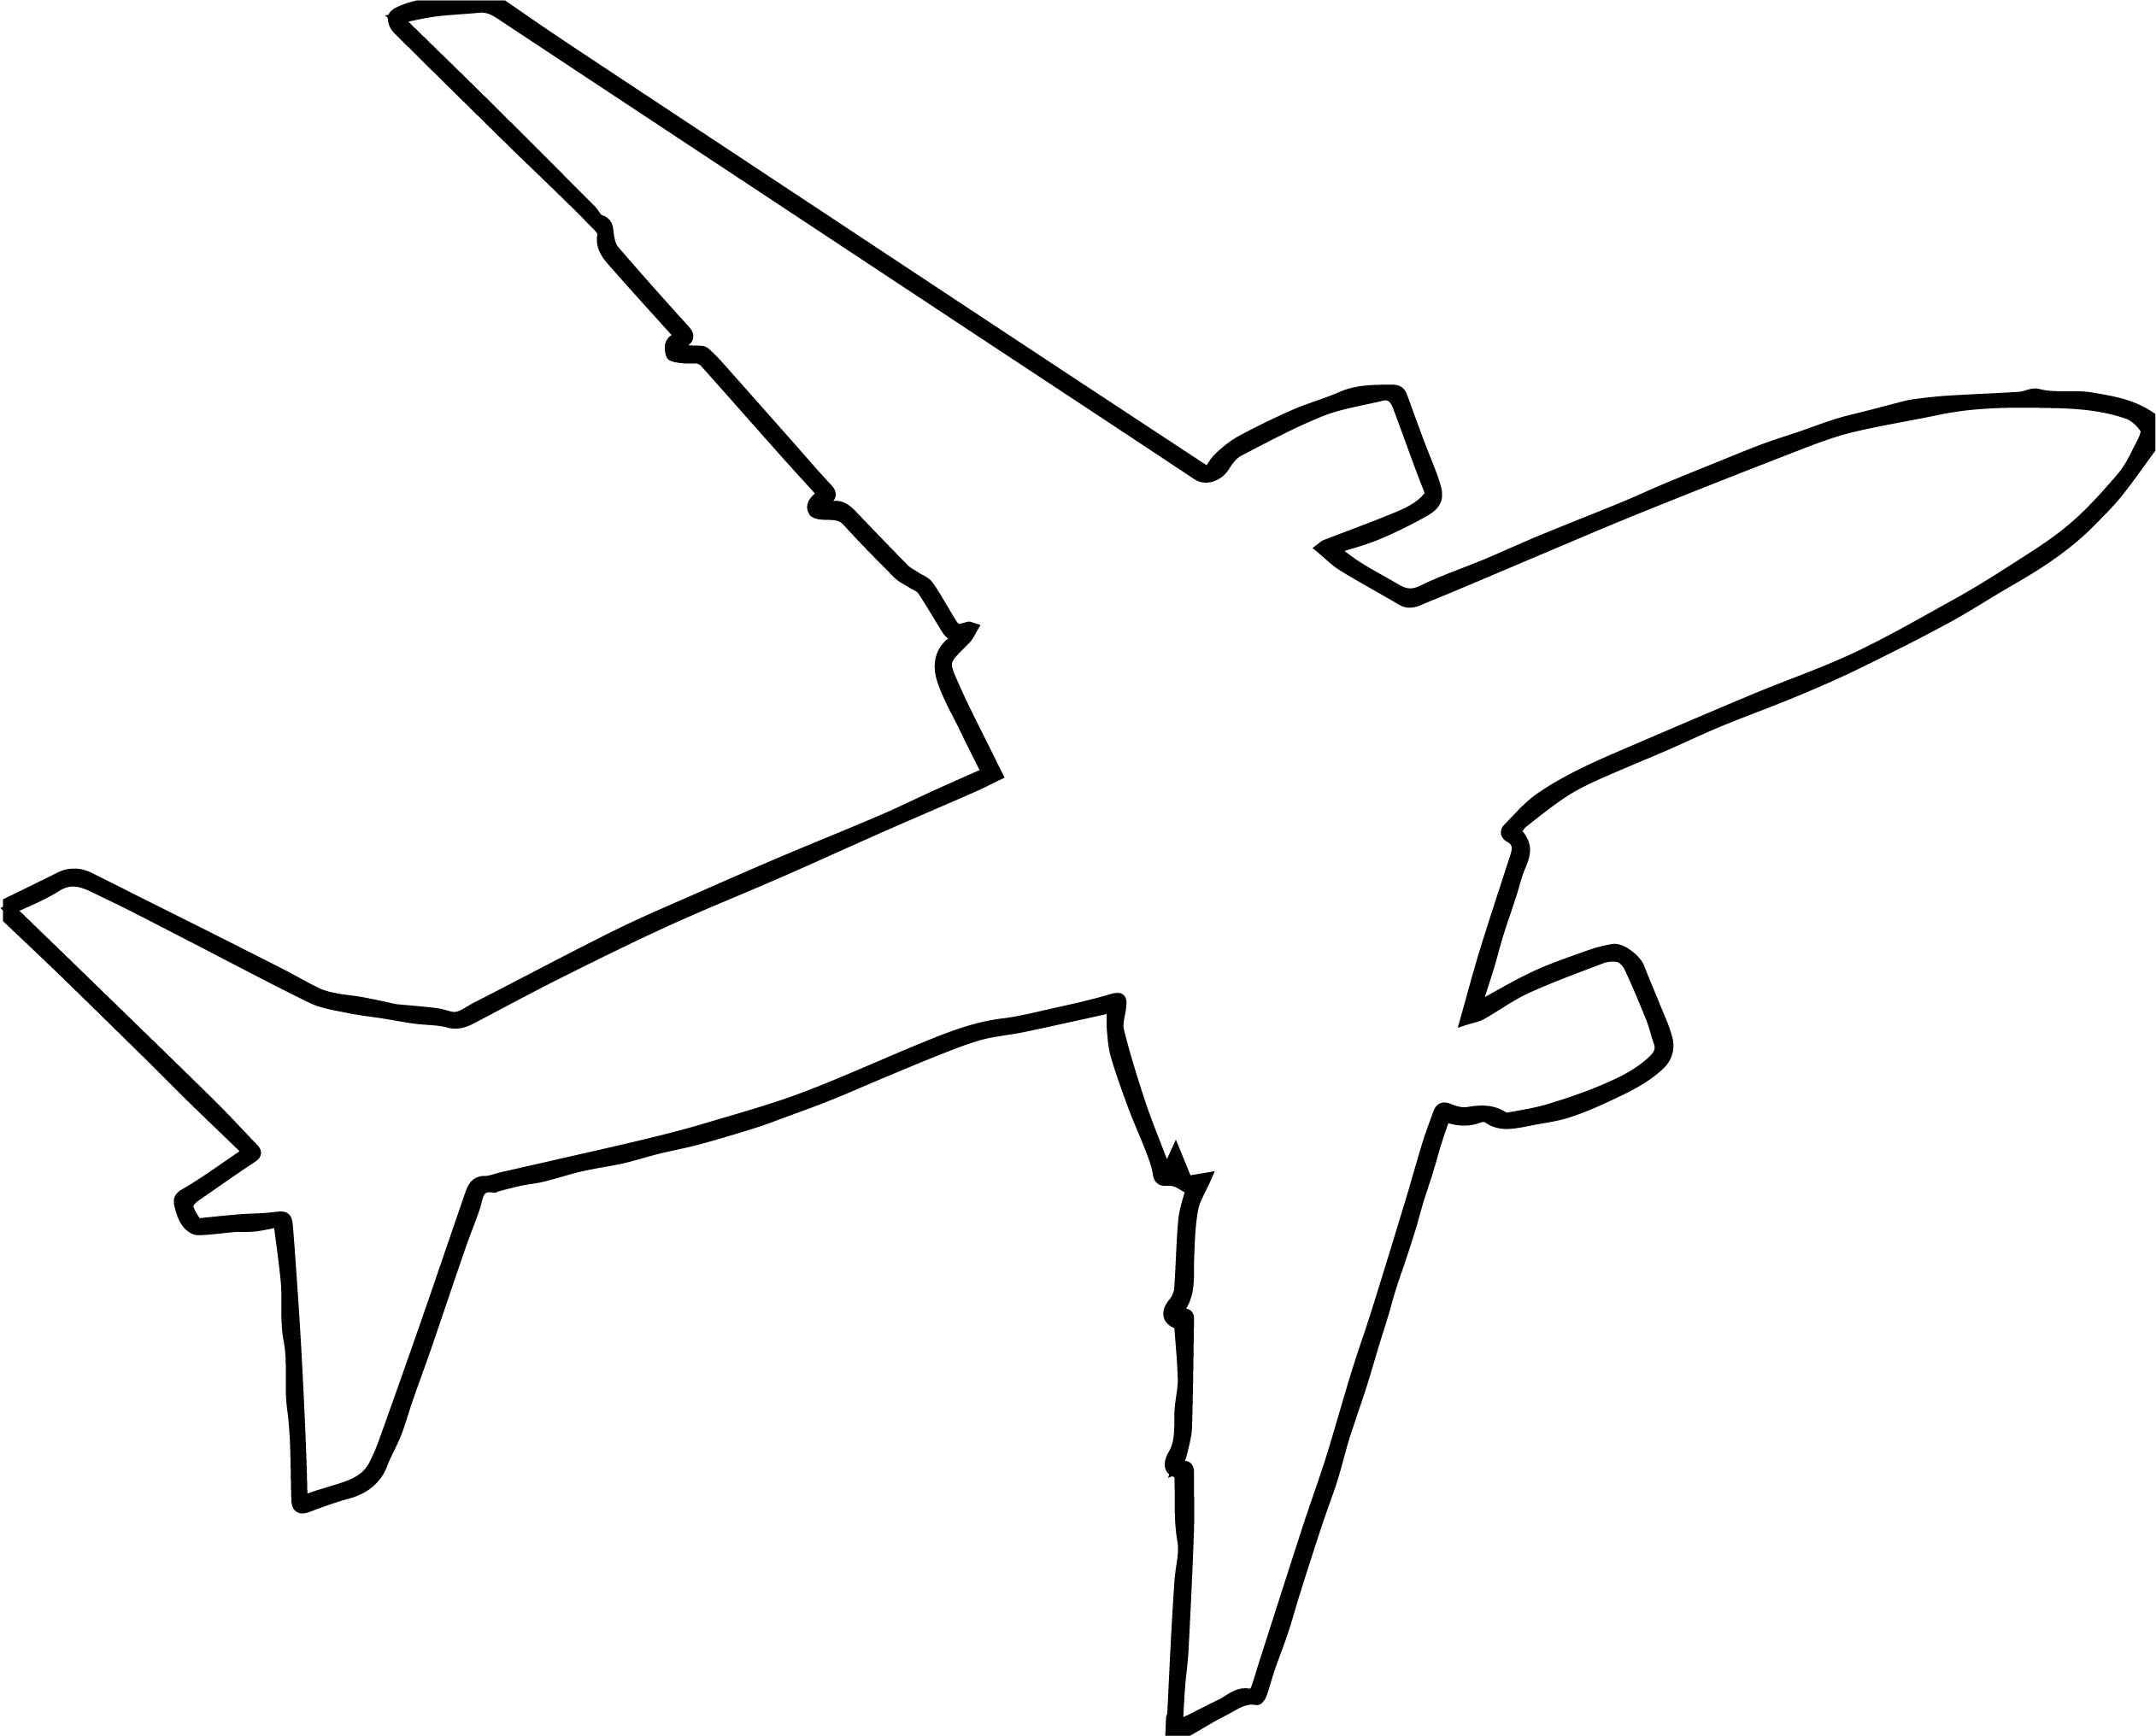 2523x2032 Airplane Outline